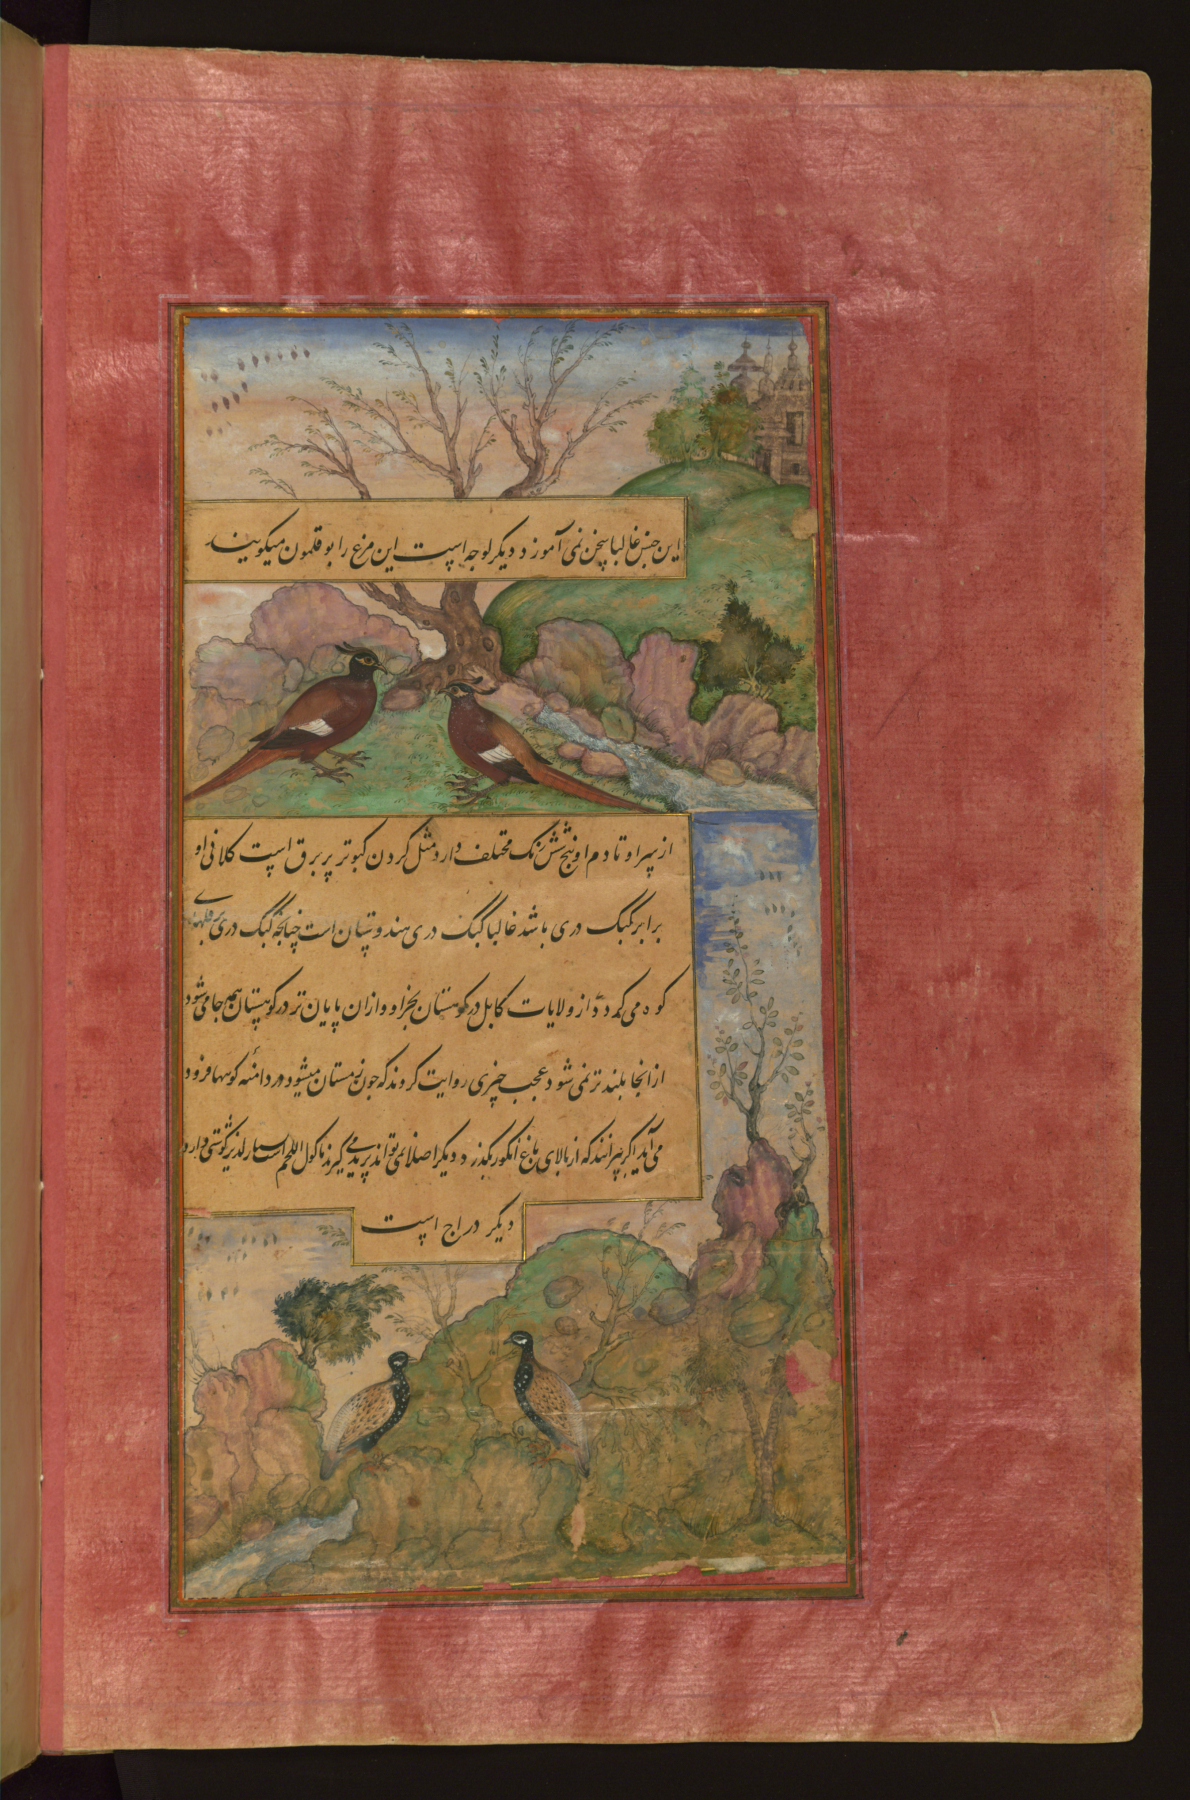 Birds of Persia luchas, called būqalamūn (بوقلمون turkey in Persian), and partridges